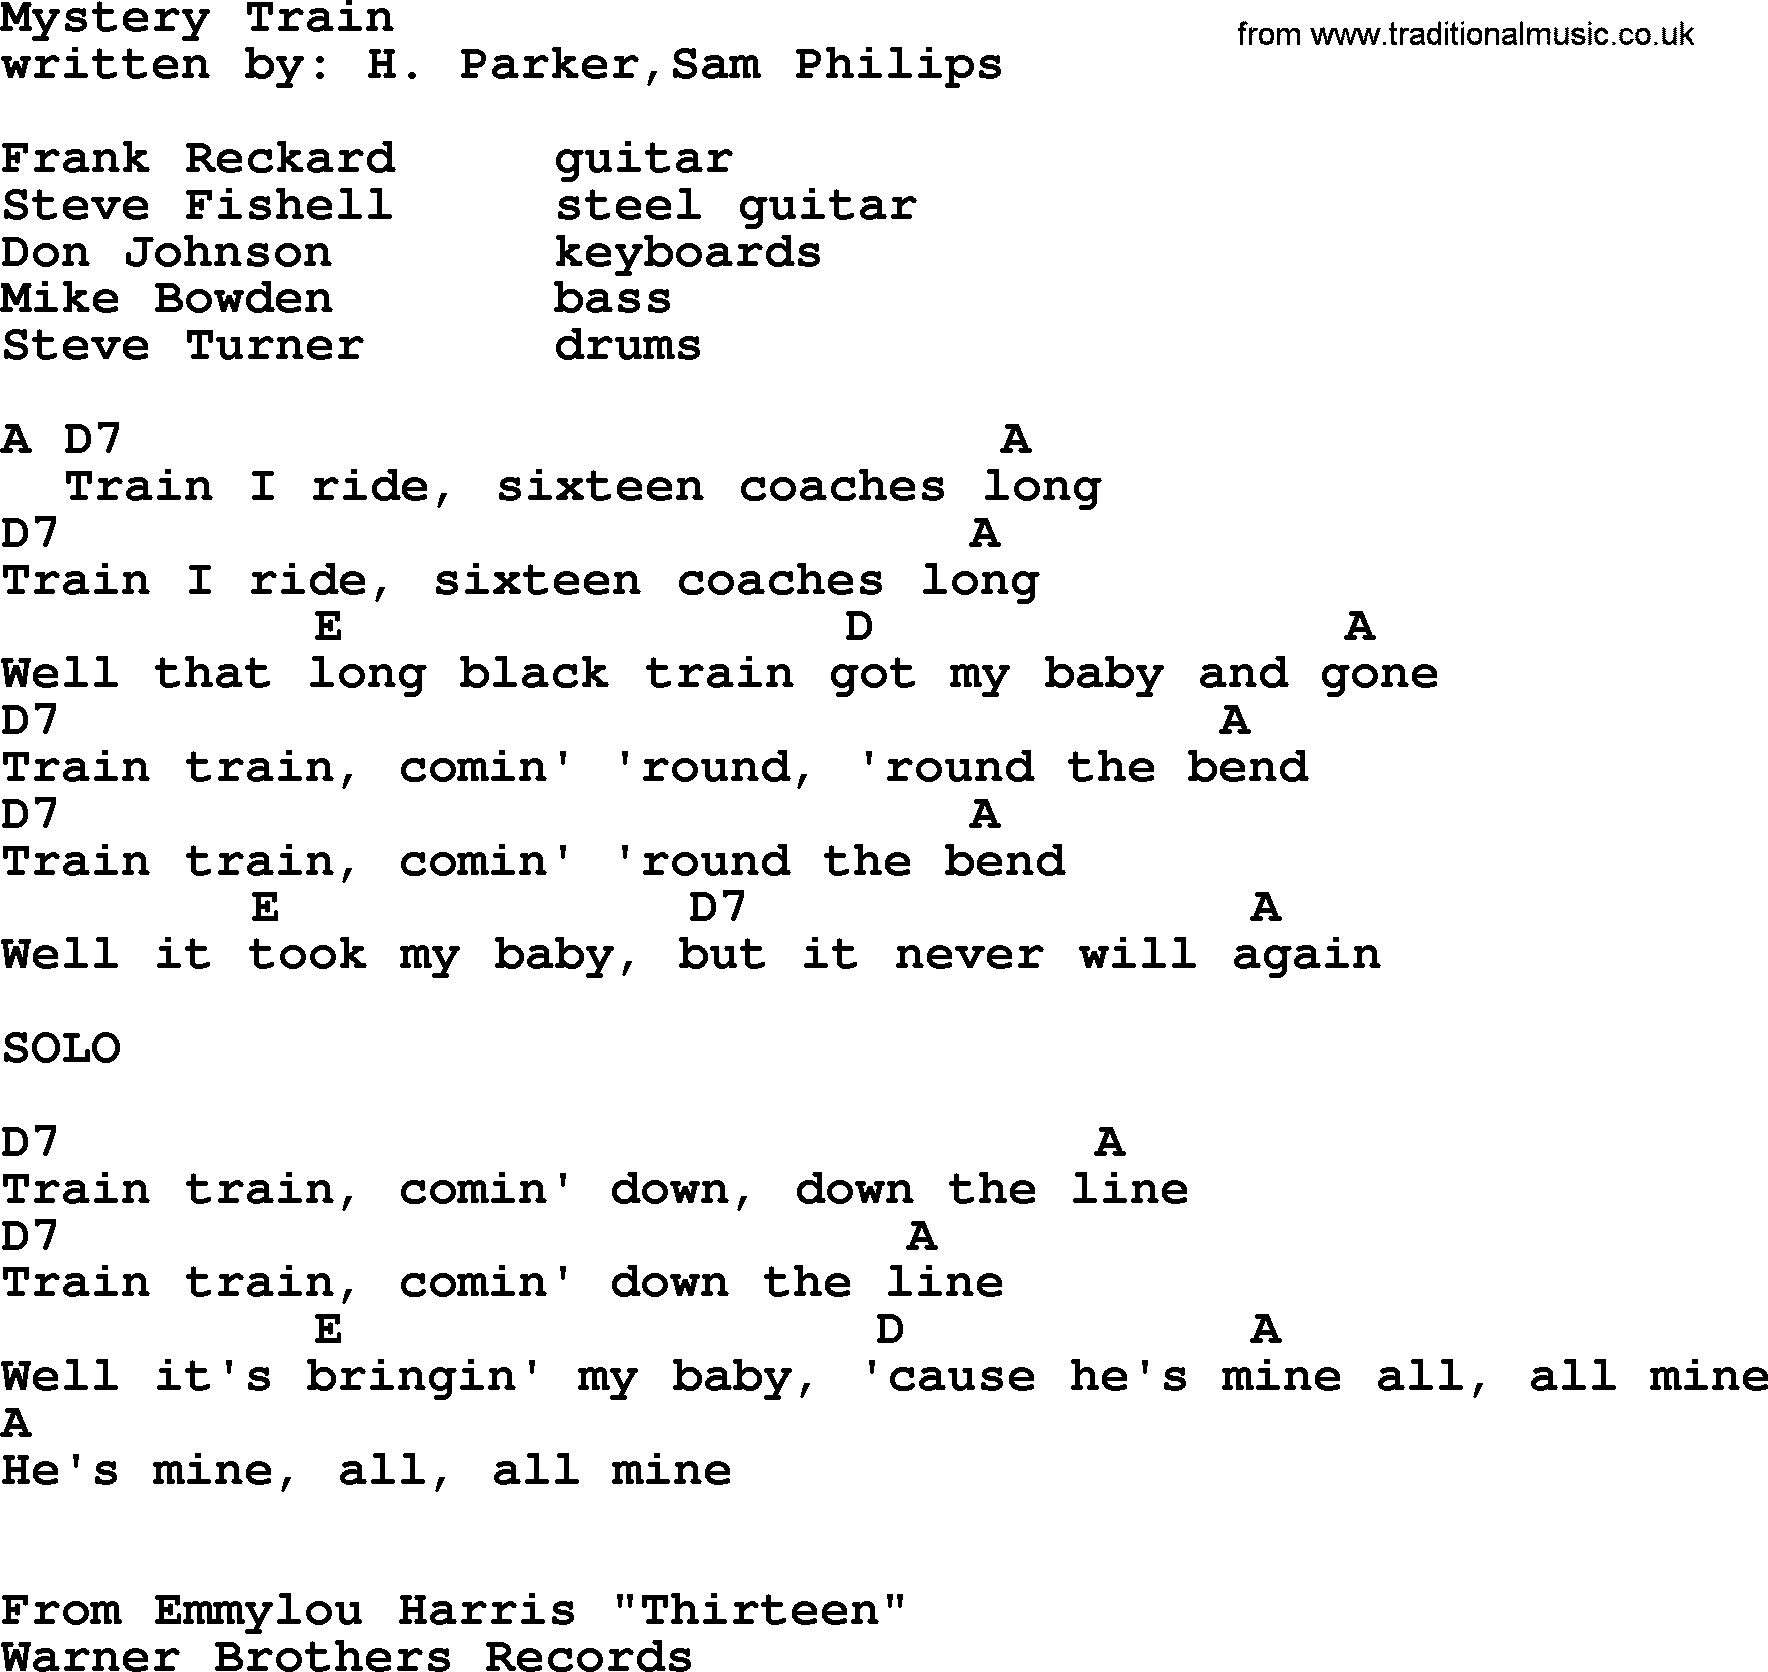 Mystery train guitar chords image collections guitar chords examples emmylou harris song mystery train lyrics and chords emmylou harris song mystery train lyrics and chords hexwebz Choice Image